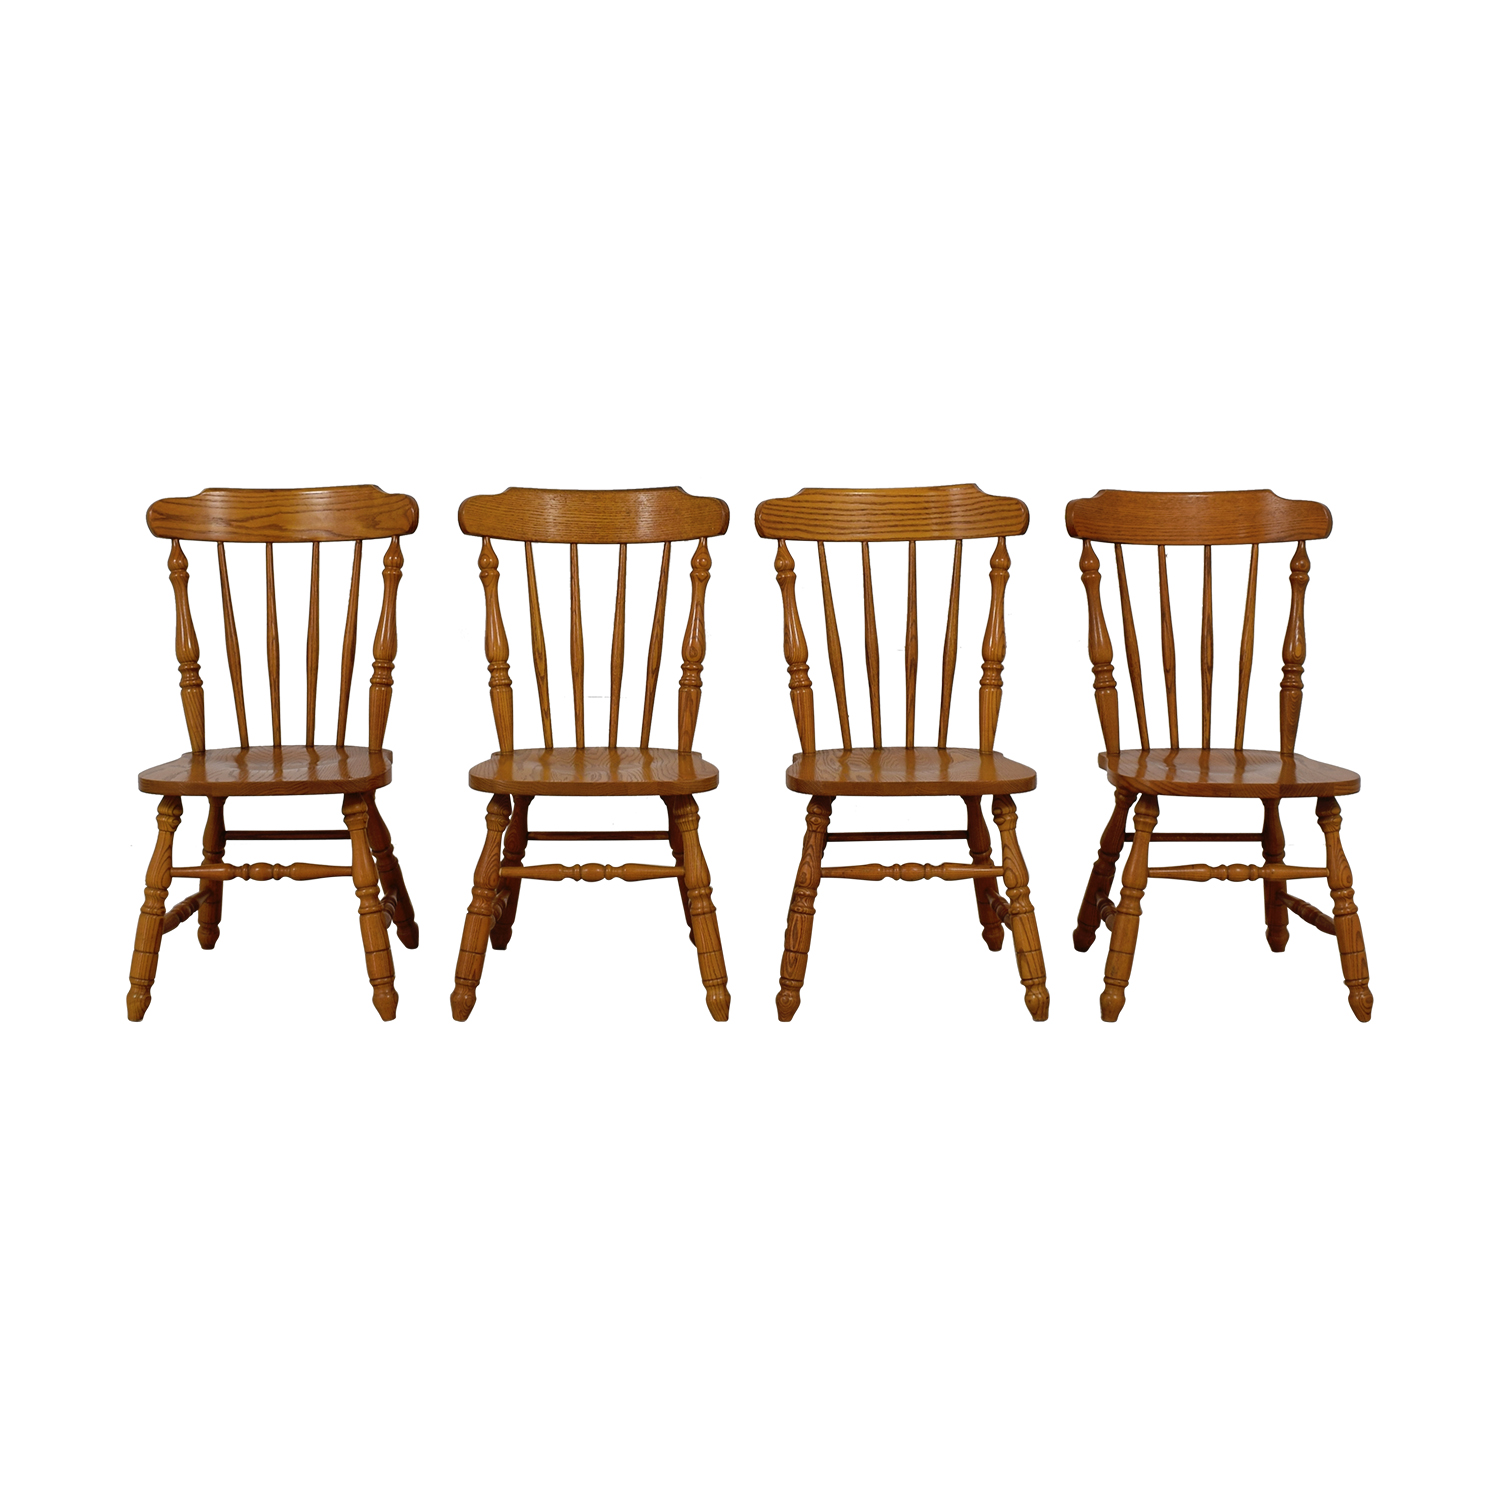 Virginia House Virginia House Wood Dining Room Chairs used